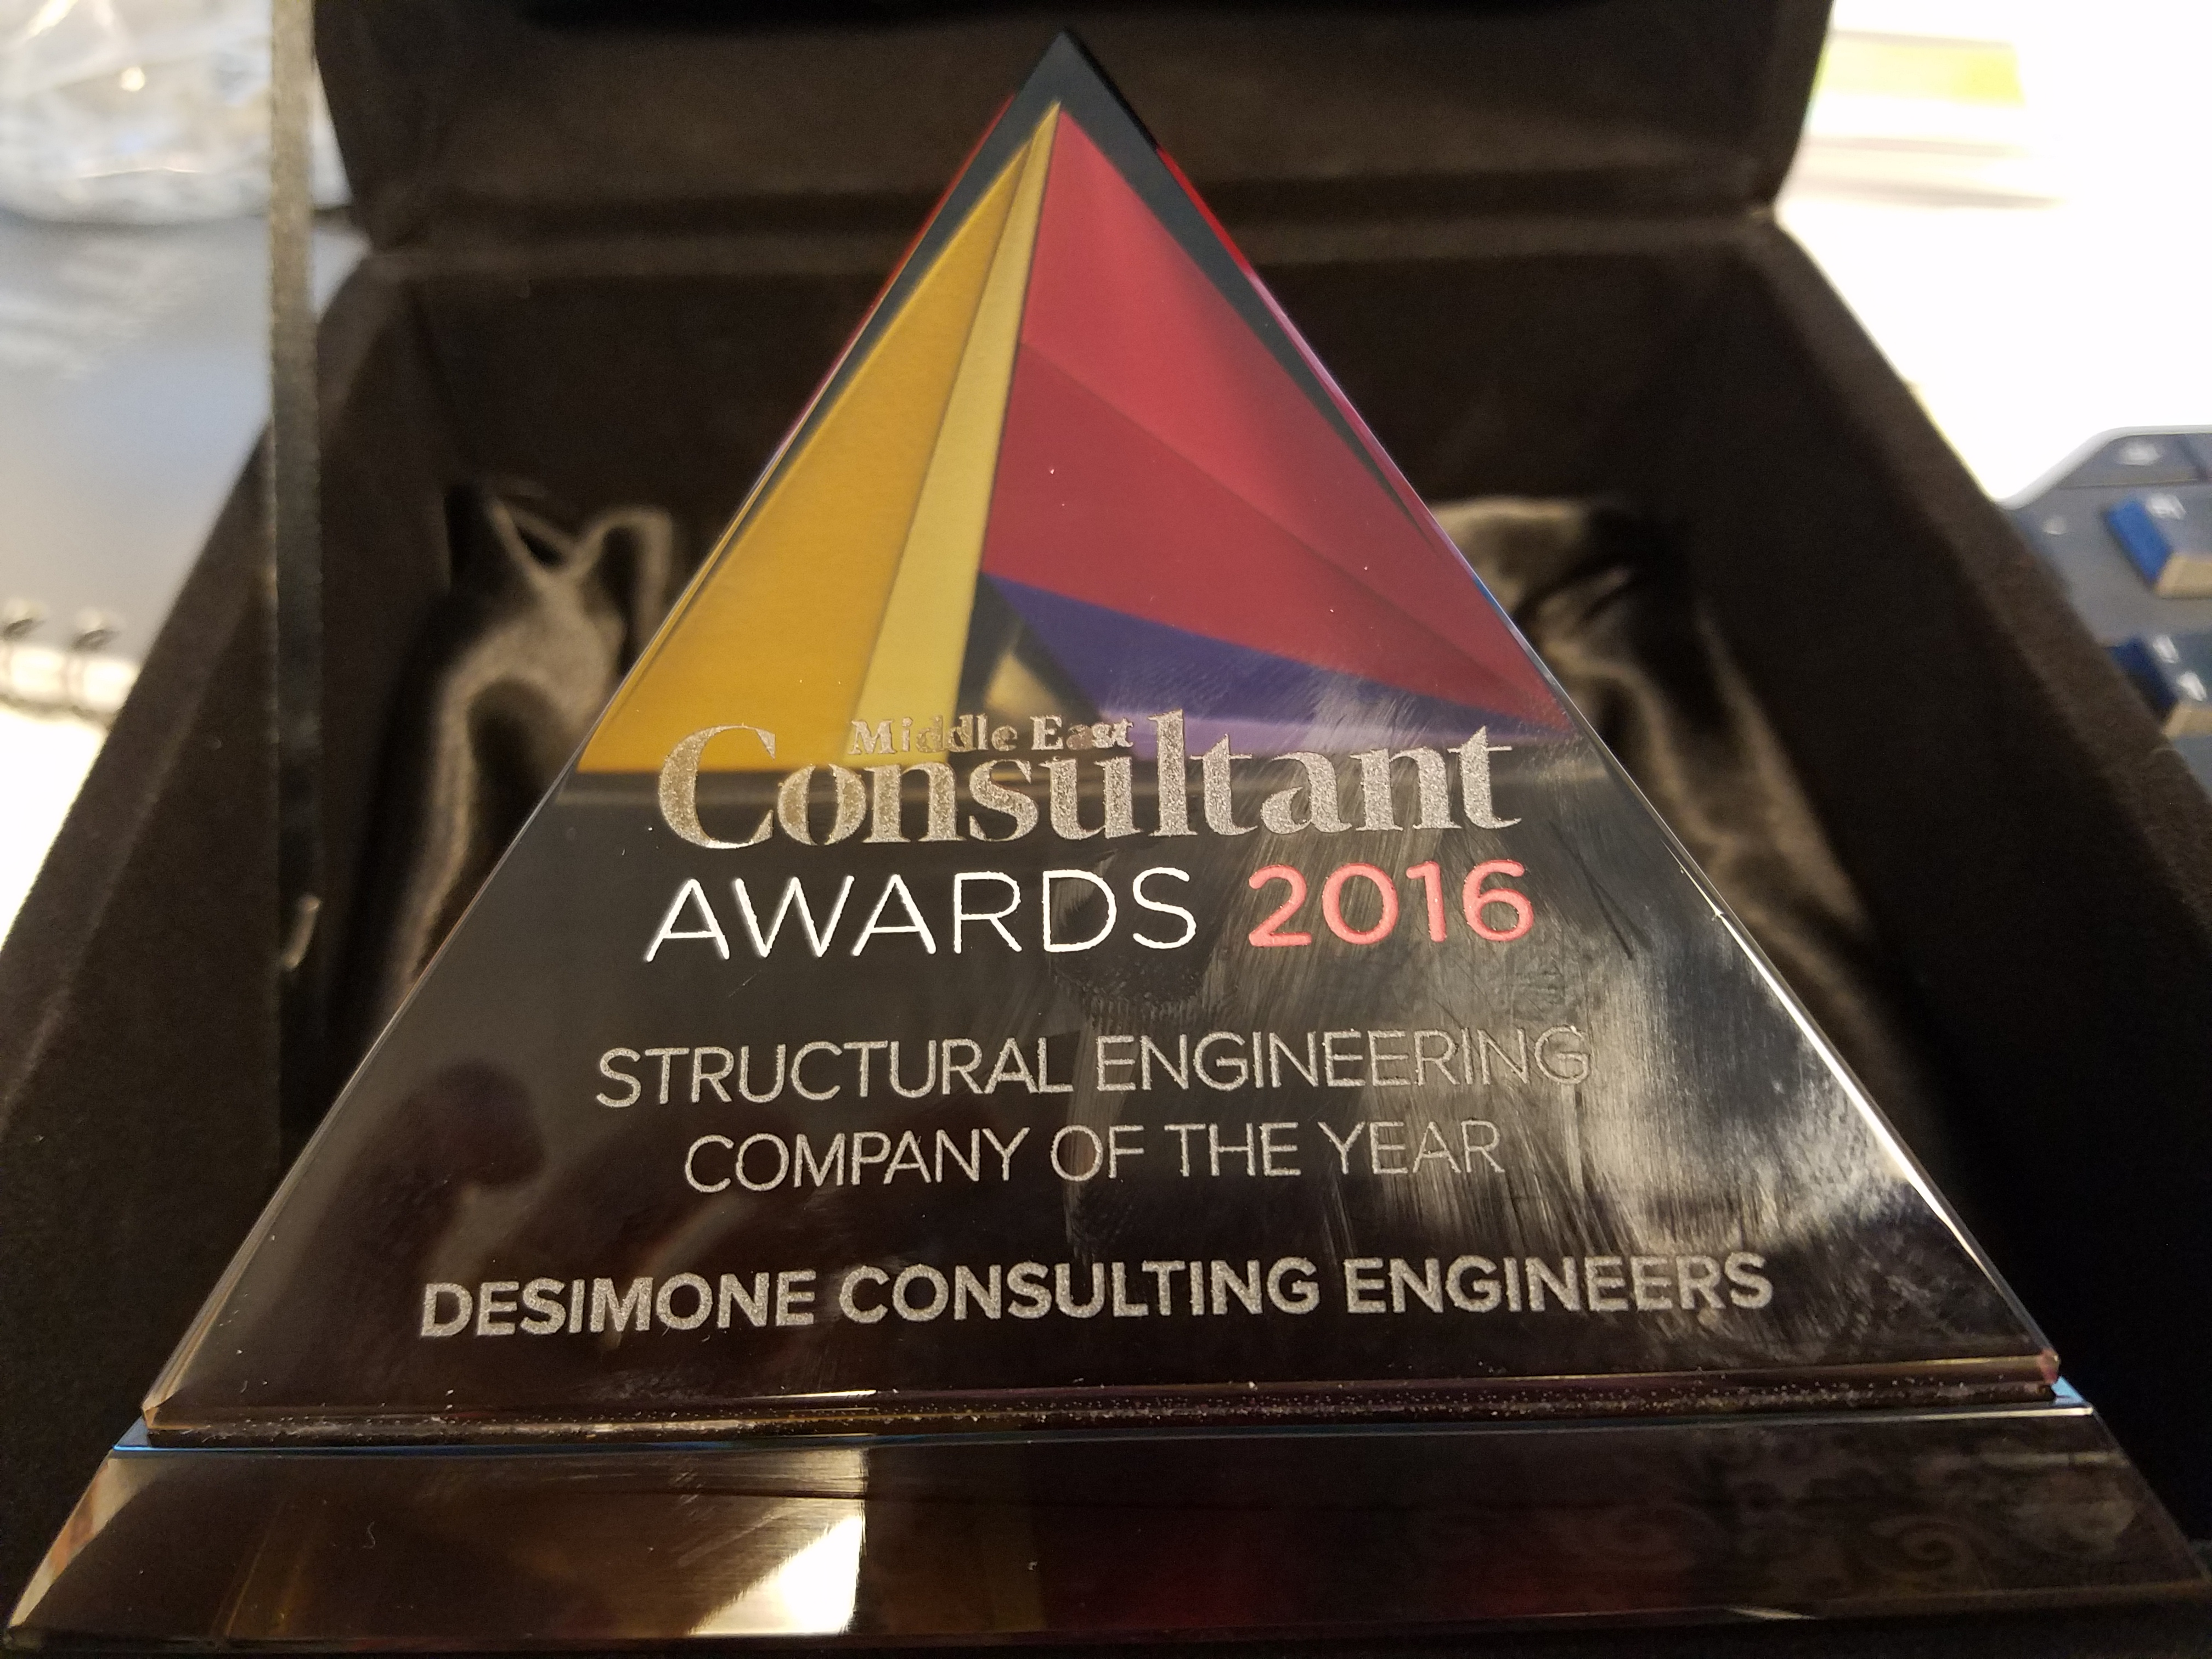 Desimone awarded structural engineering company of the year for Designer east architectural engineering design consultants company